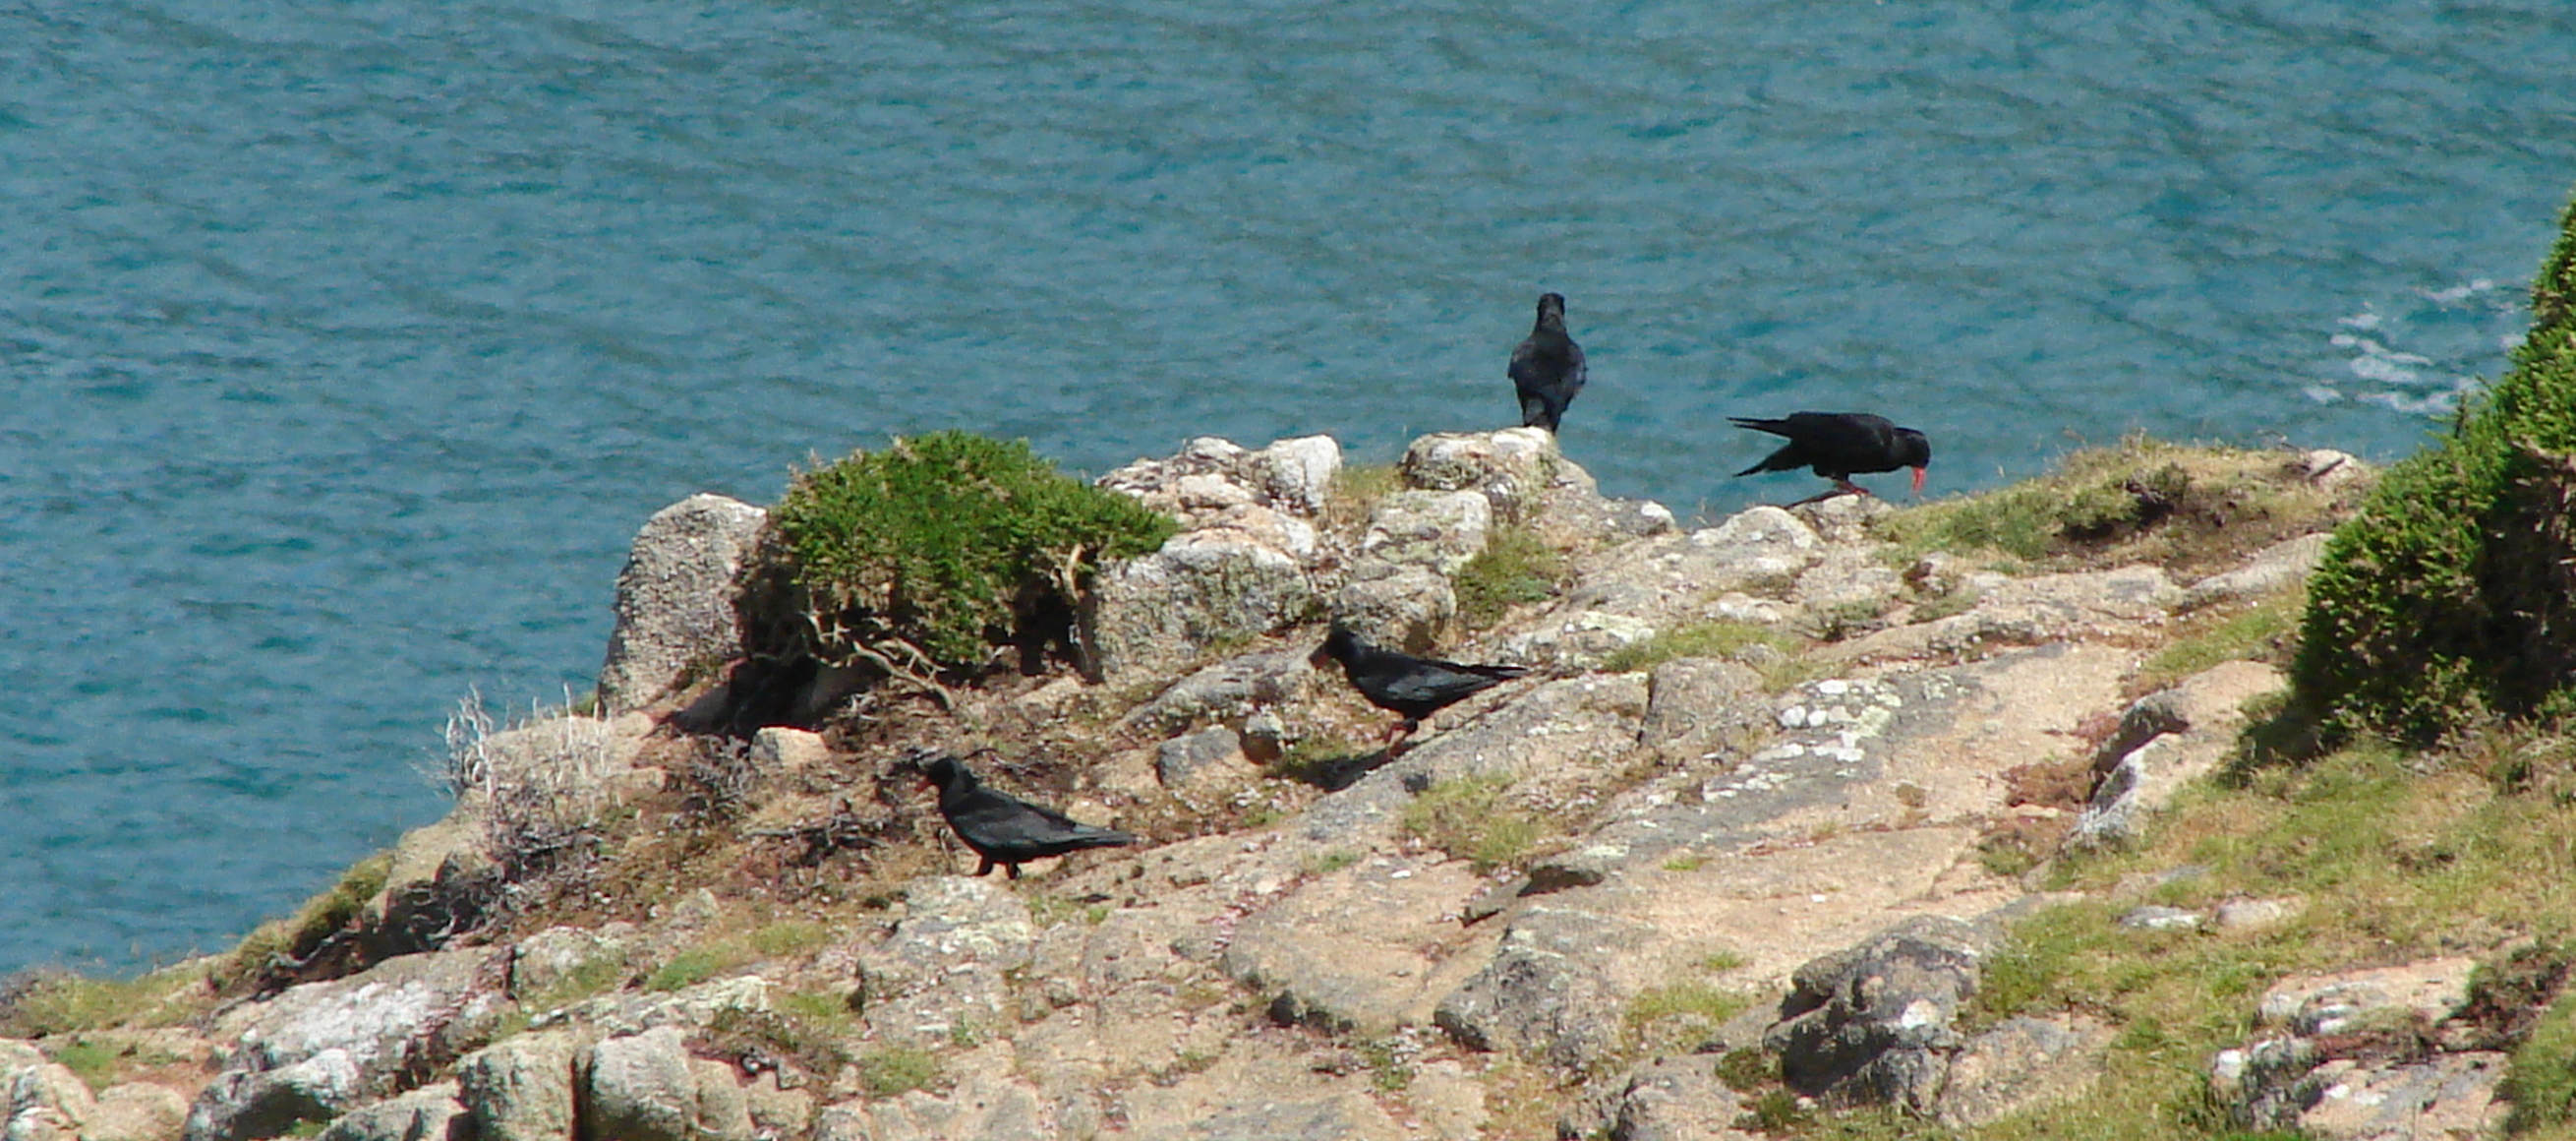 Chough at Sorel. June 2014. Photo by Pierre Rauscher (4)